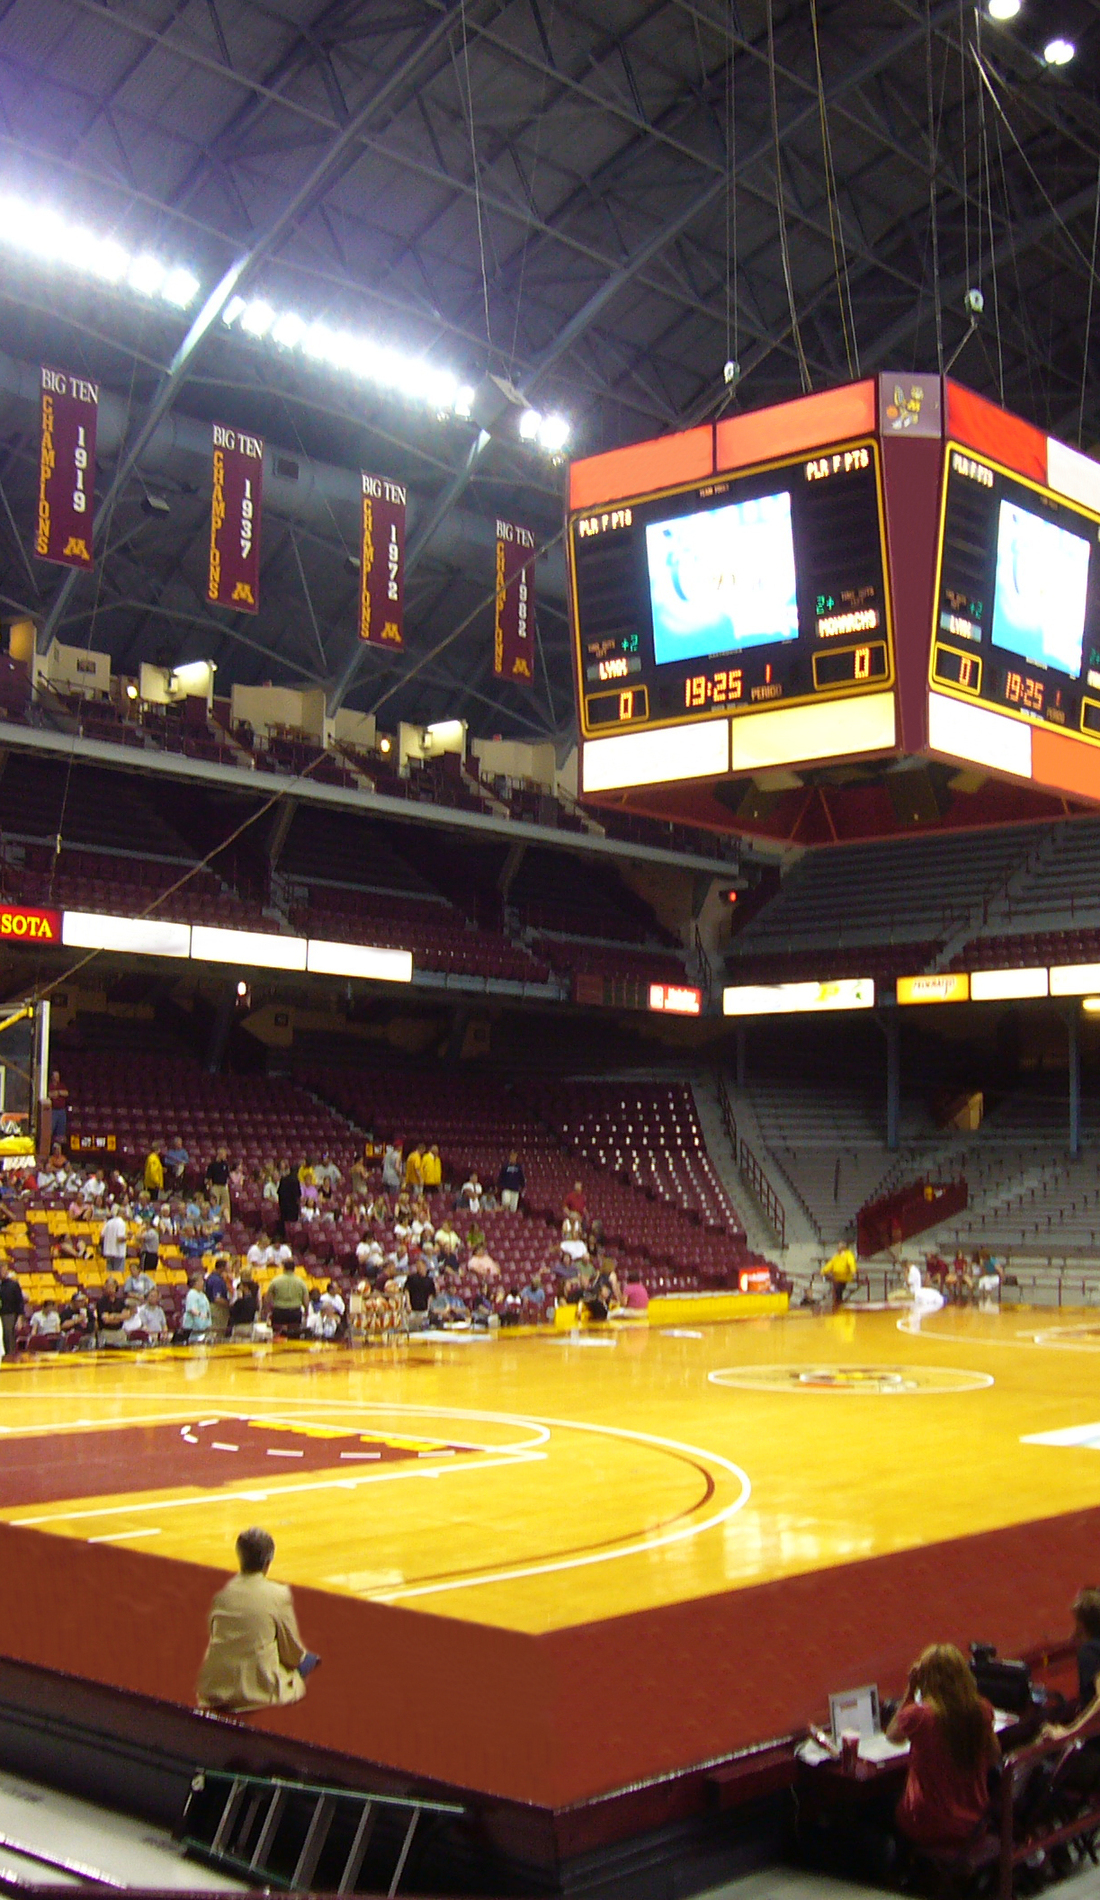 A Minnesota Golden Gophers Basketball live event